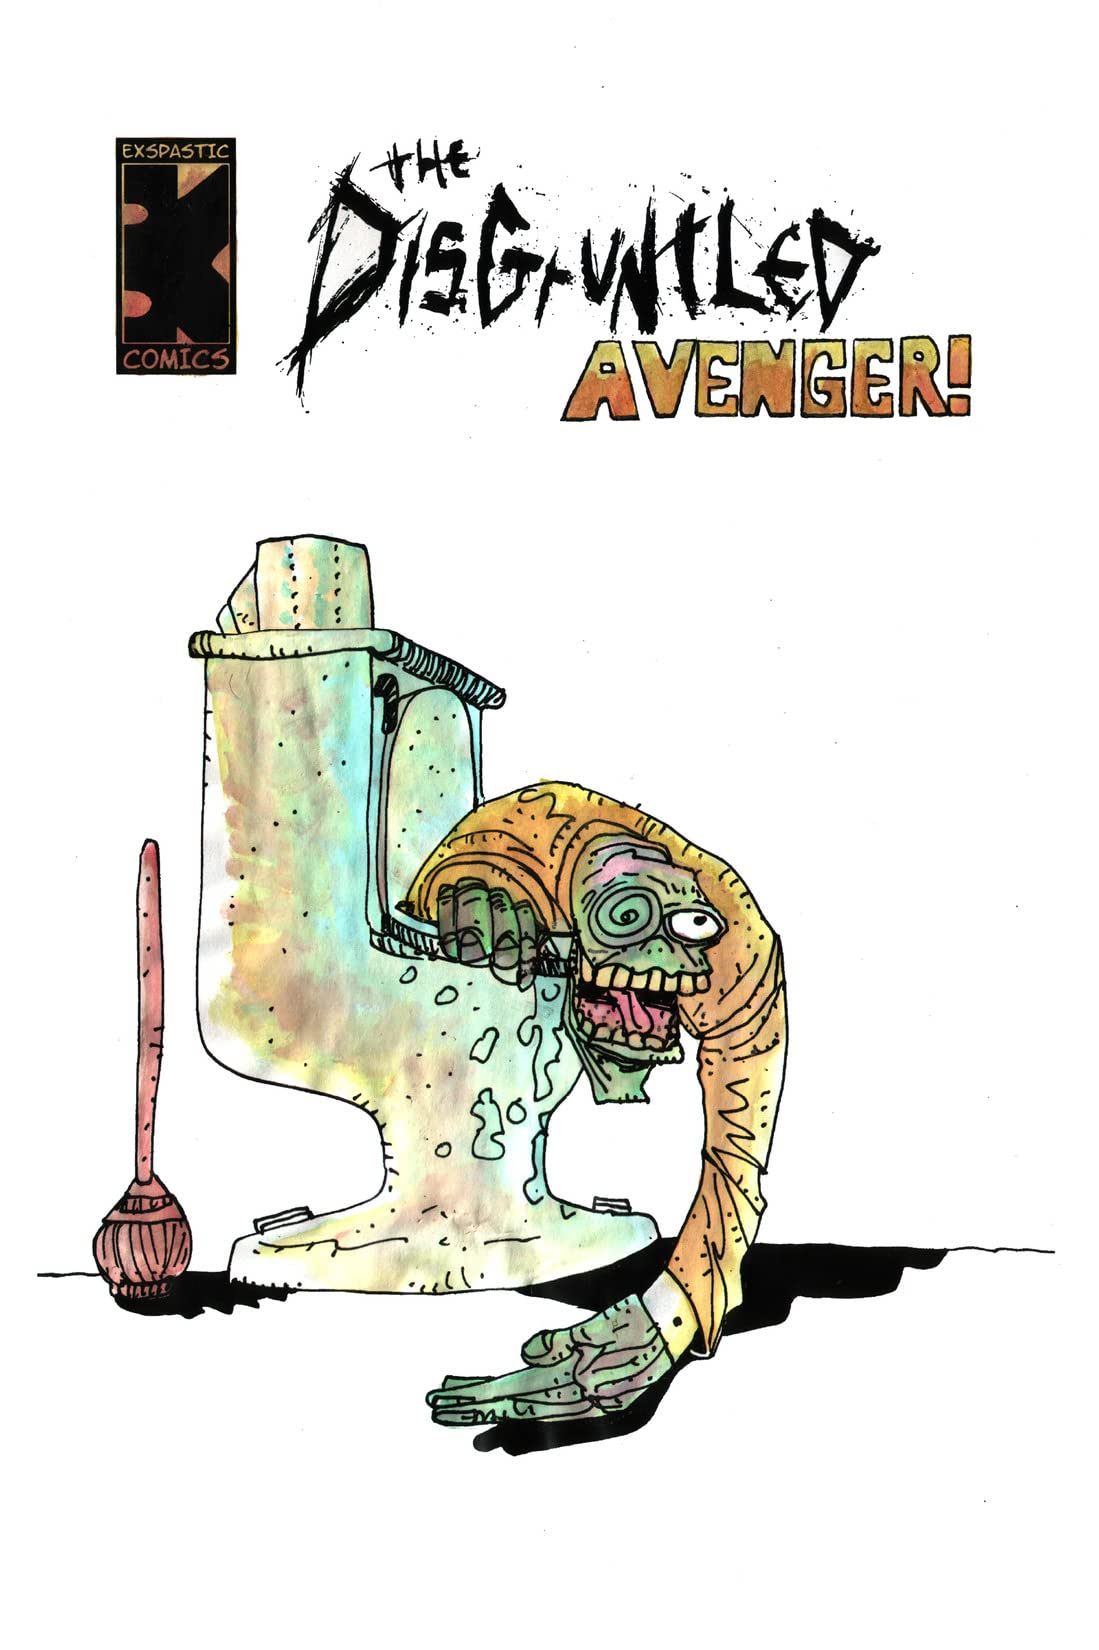 The Disgruntled Avenger #103